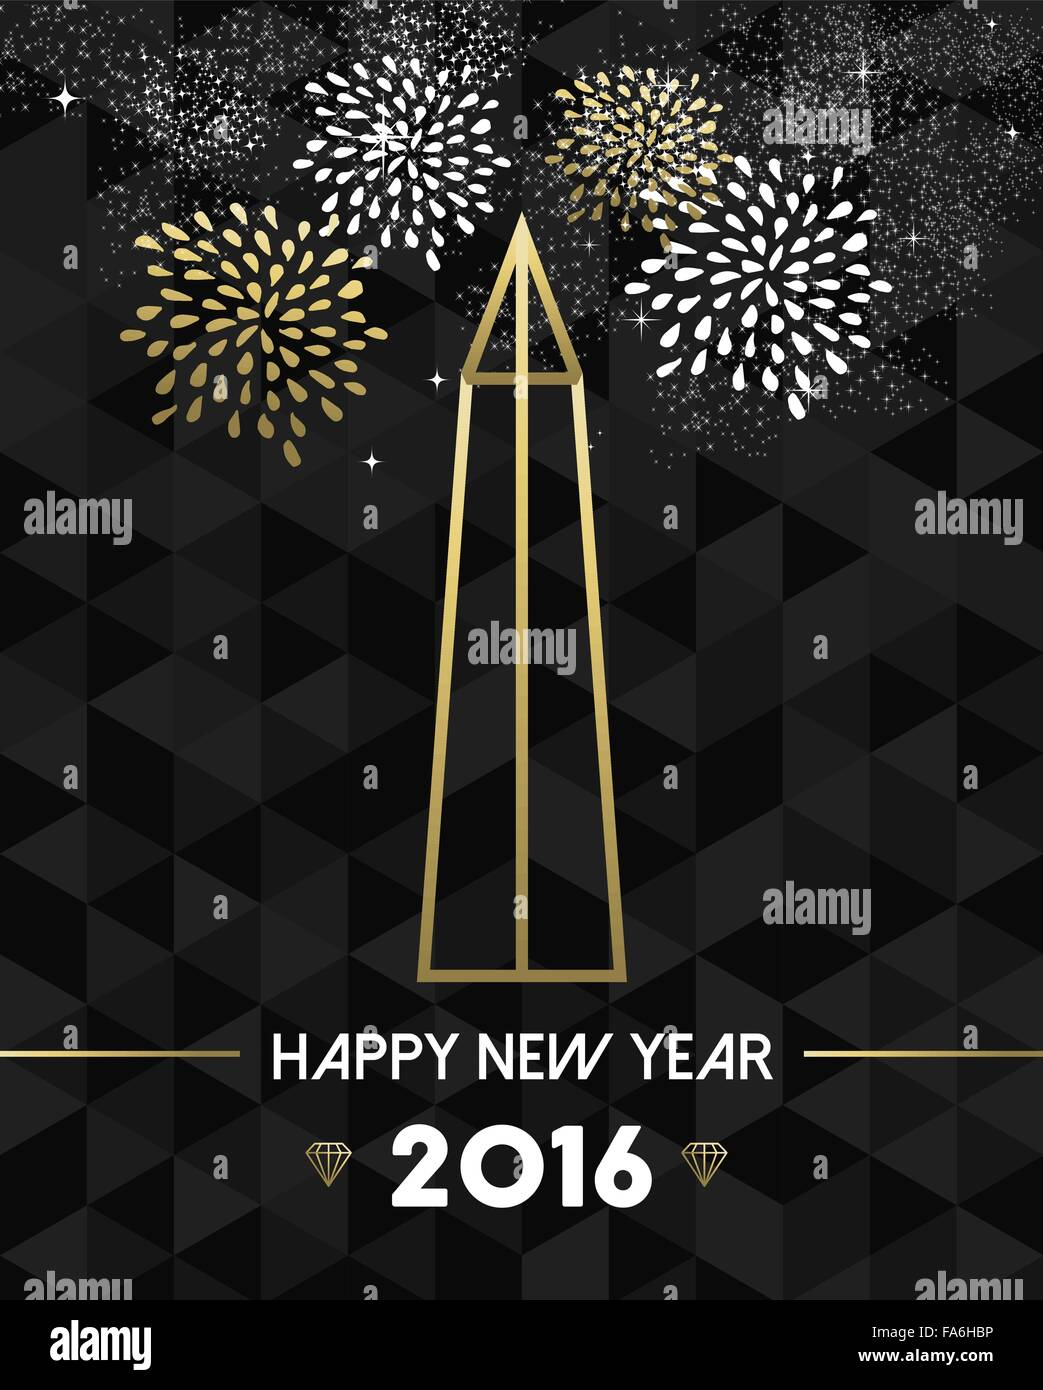 happy new year 2016 washington greeting card with usa united states monument obelisk in gold outline style eps10 vector